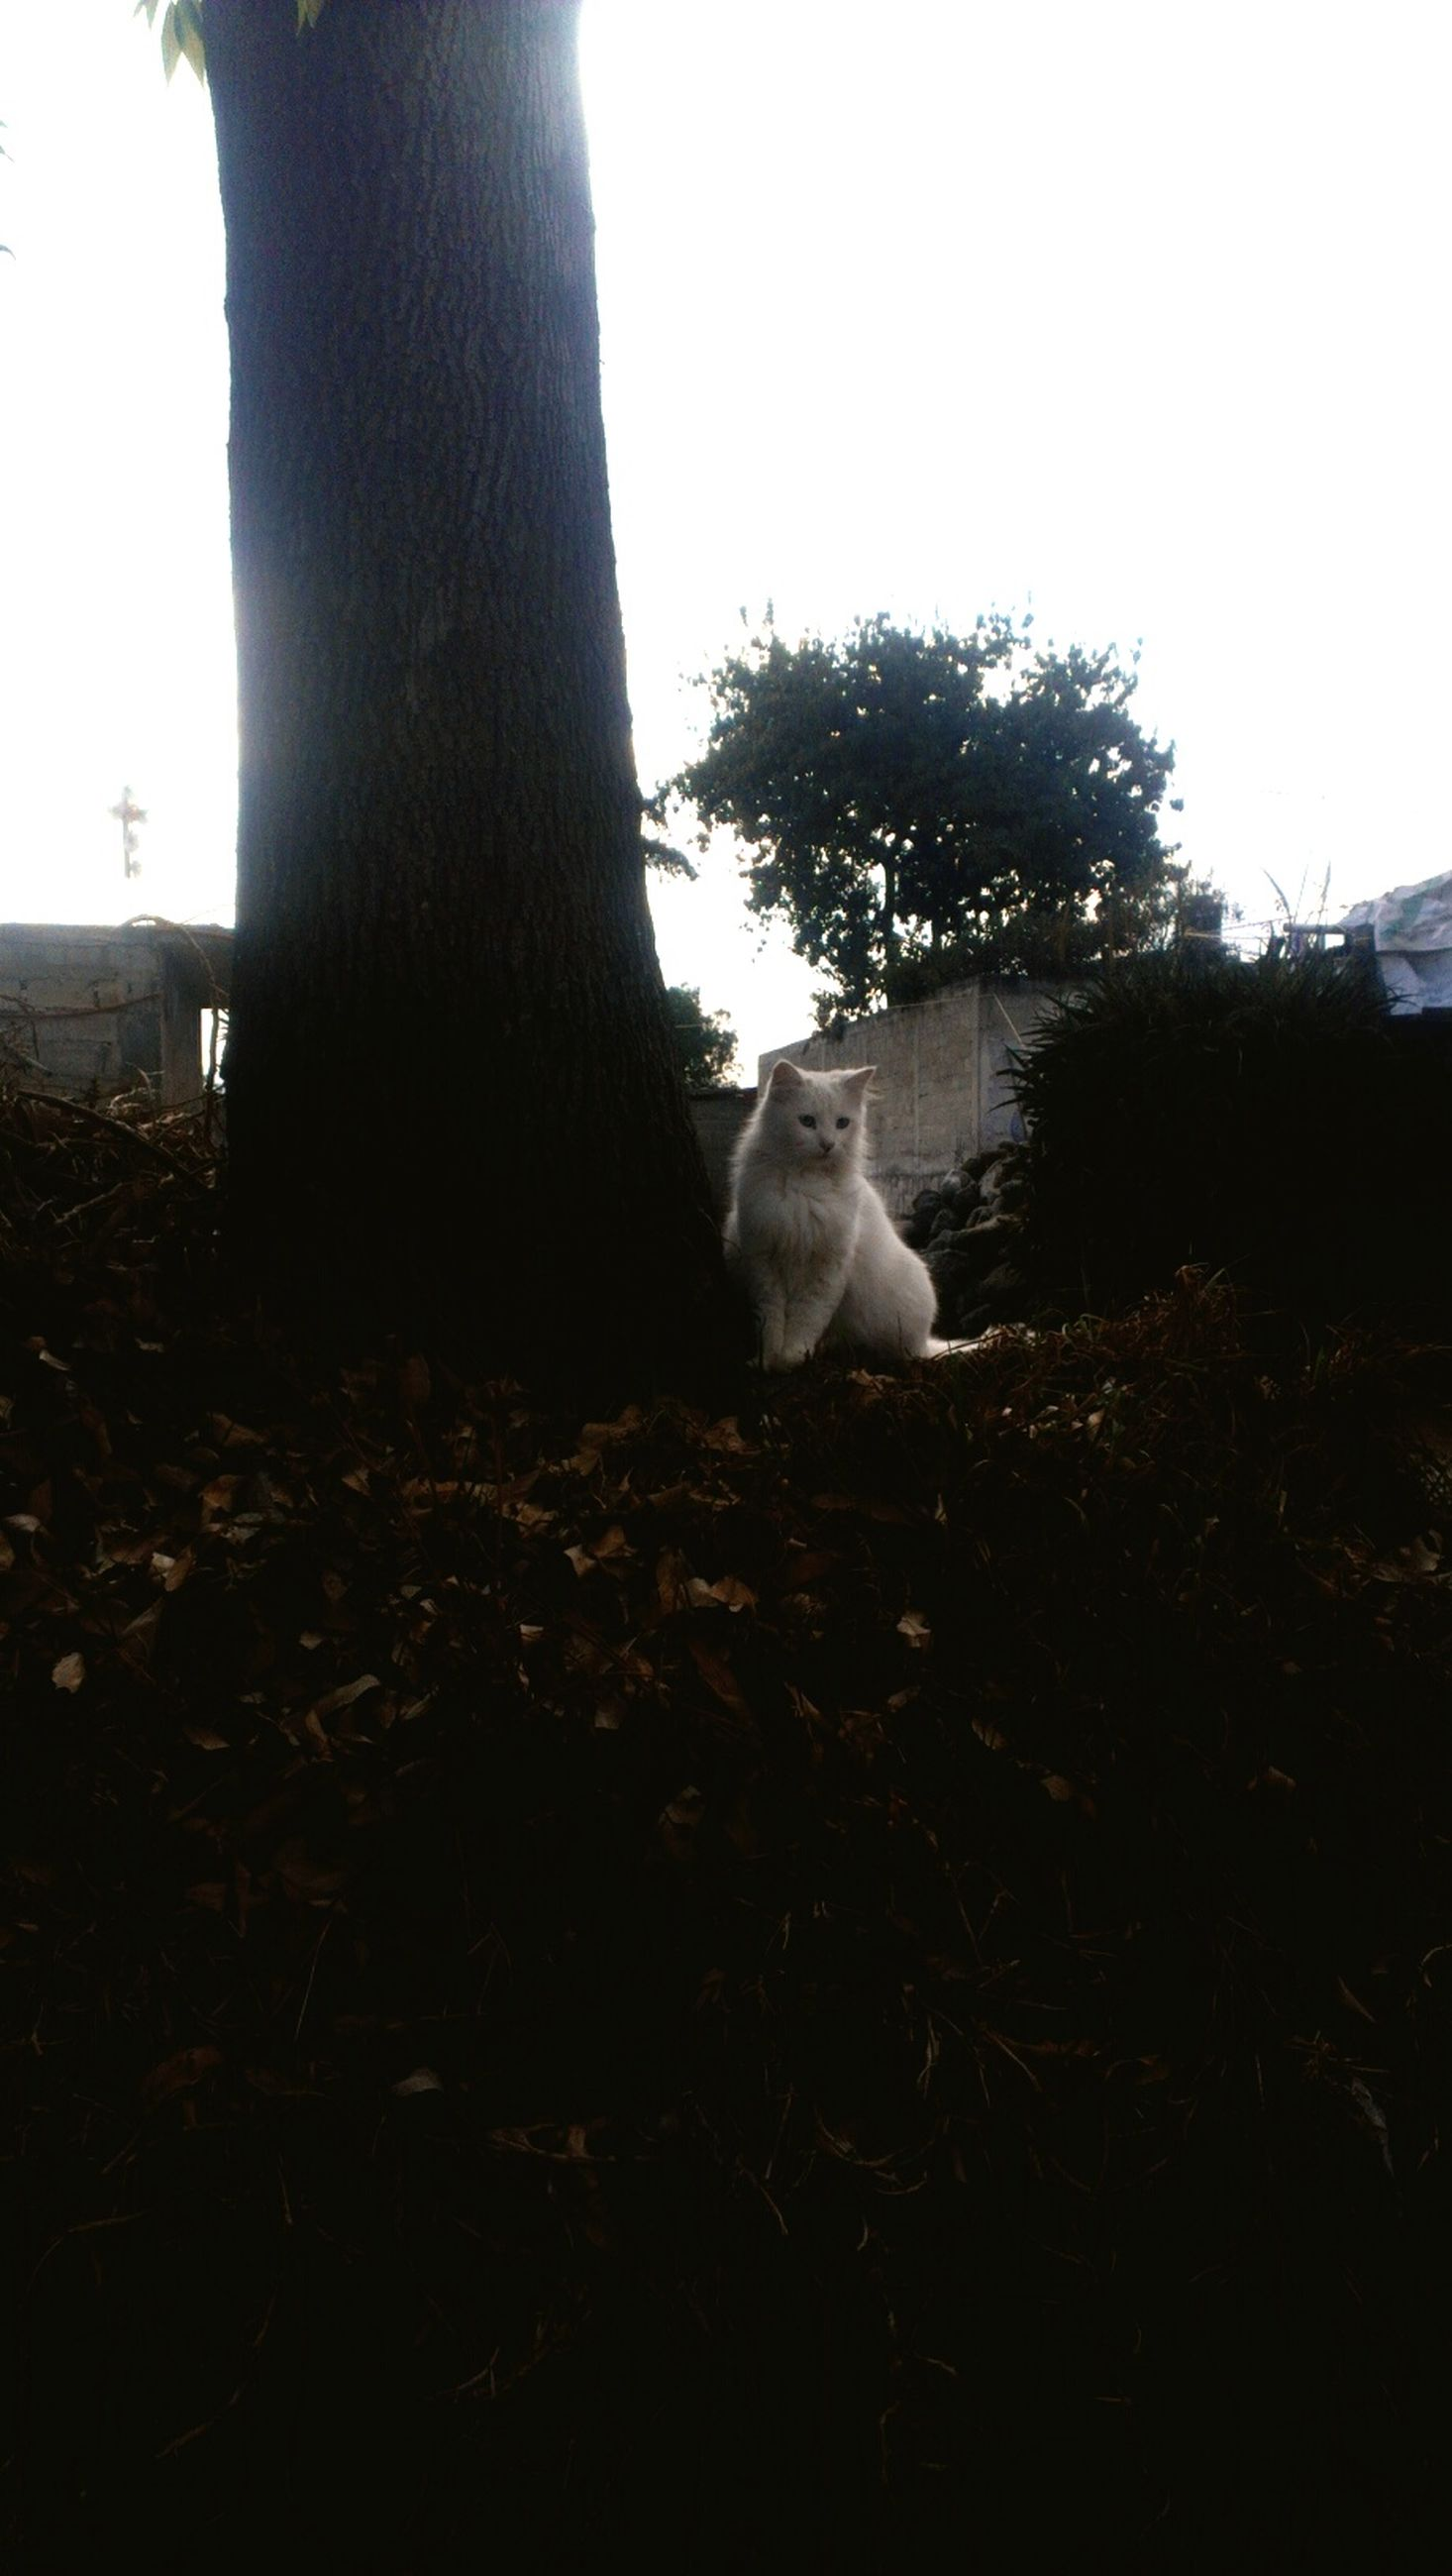 animal themes, one animal, mammal, domestic animals, pets, tree, sunlight, domestic cat, clear sky, wildlife, sky, nature, no people, day, relaxation, cat, field, dog, low angle view, outdoors